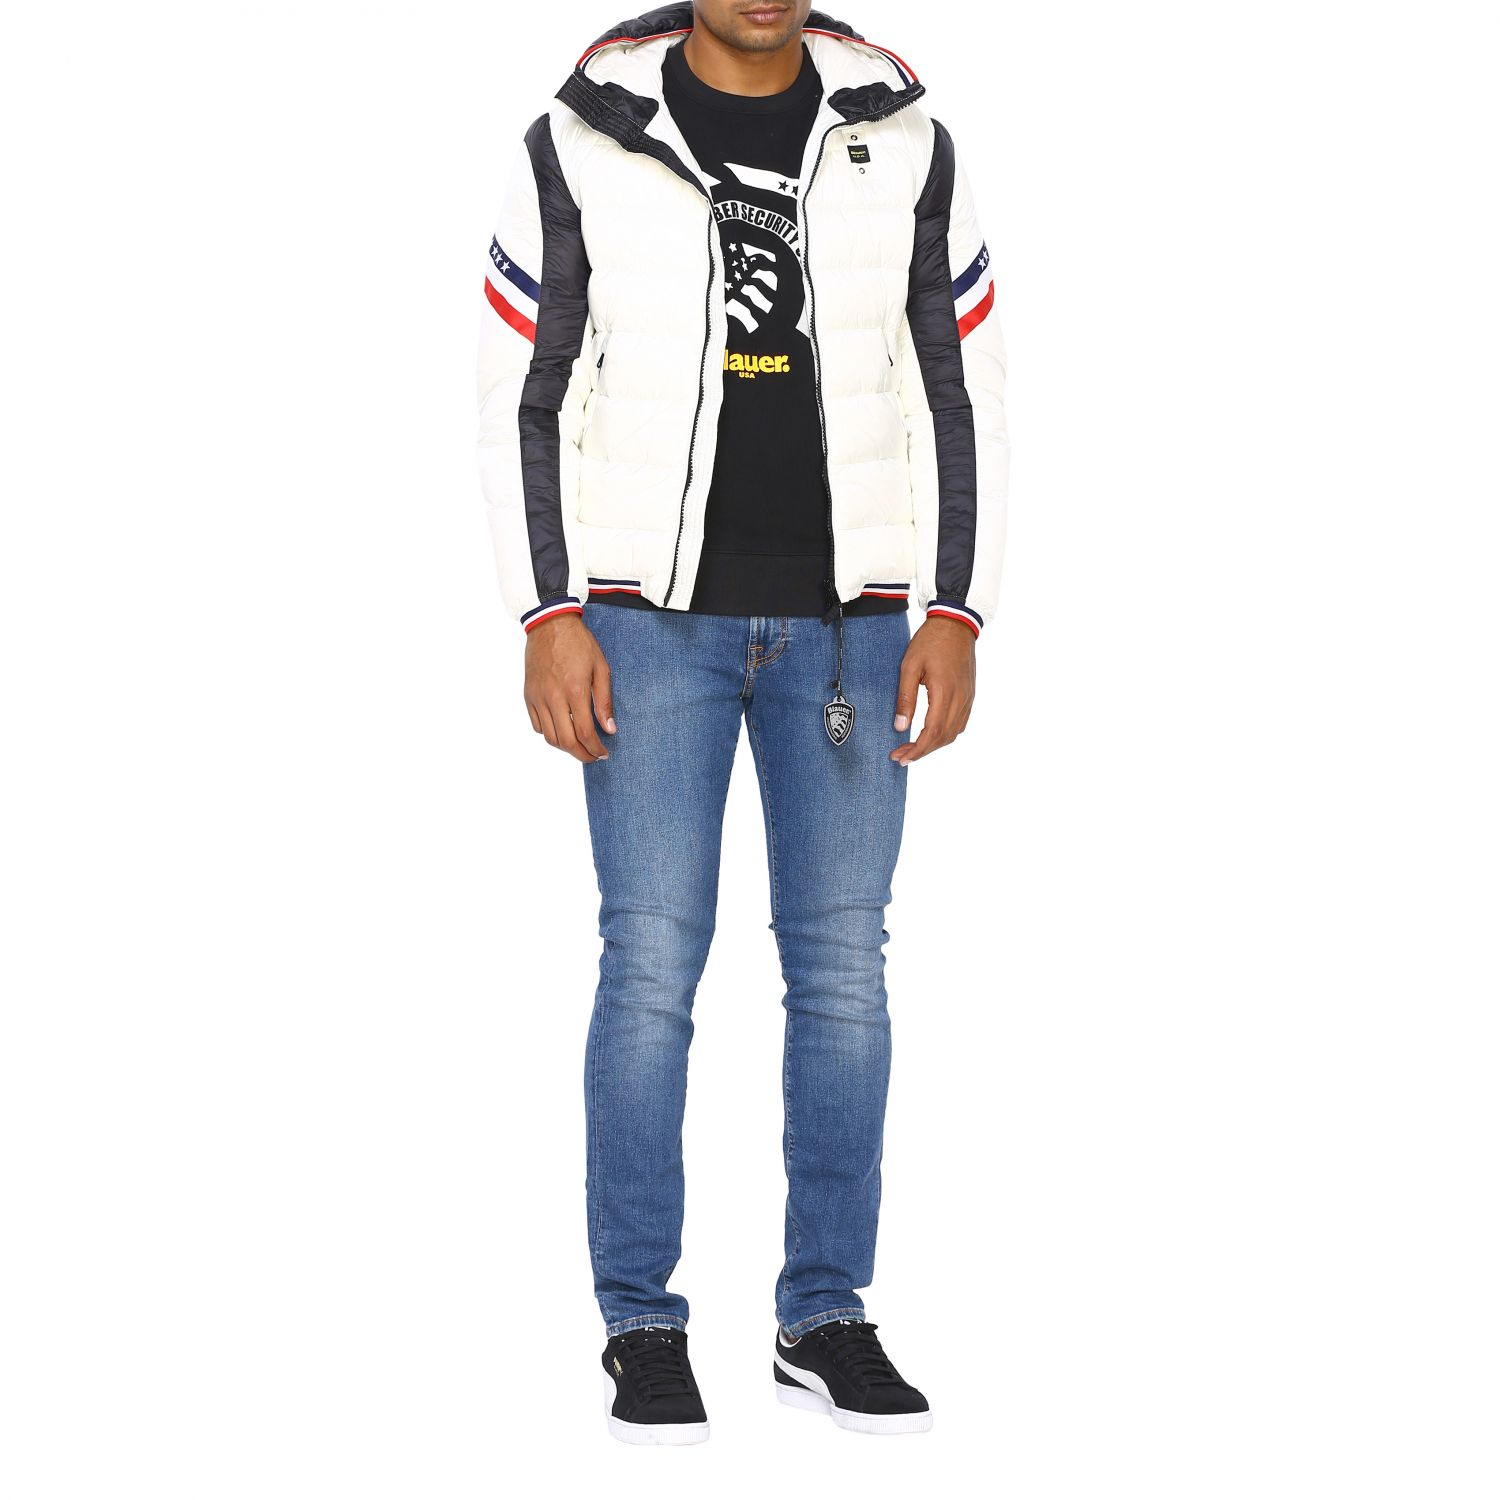 Jacket men Blauer white 2